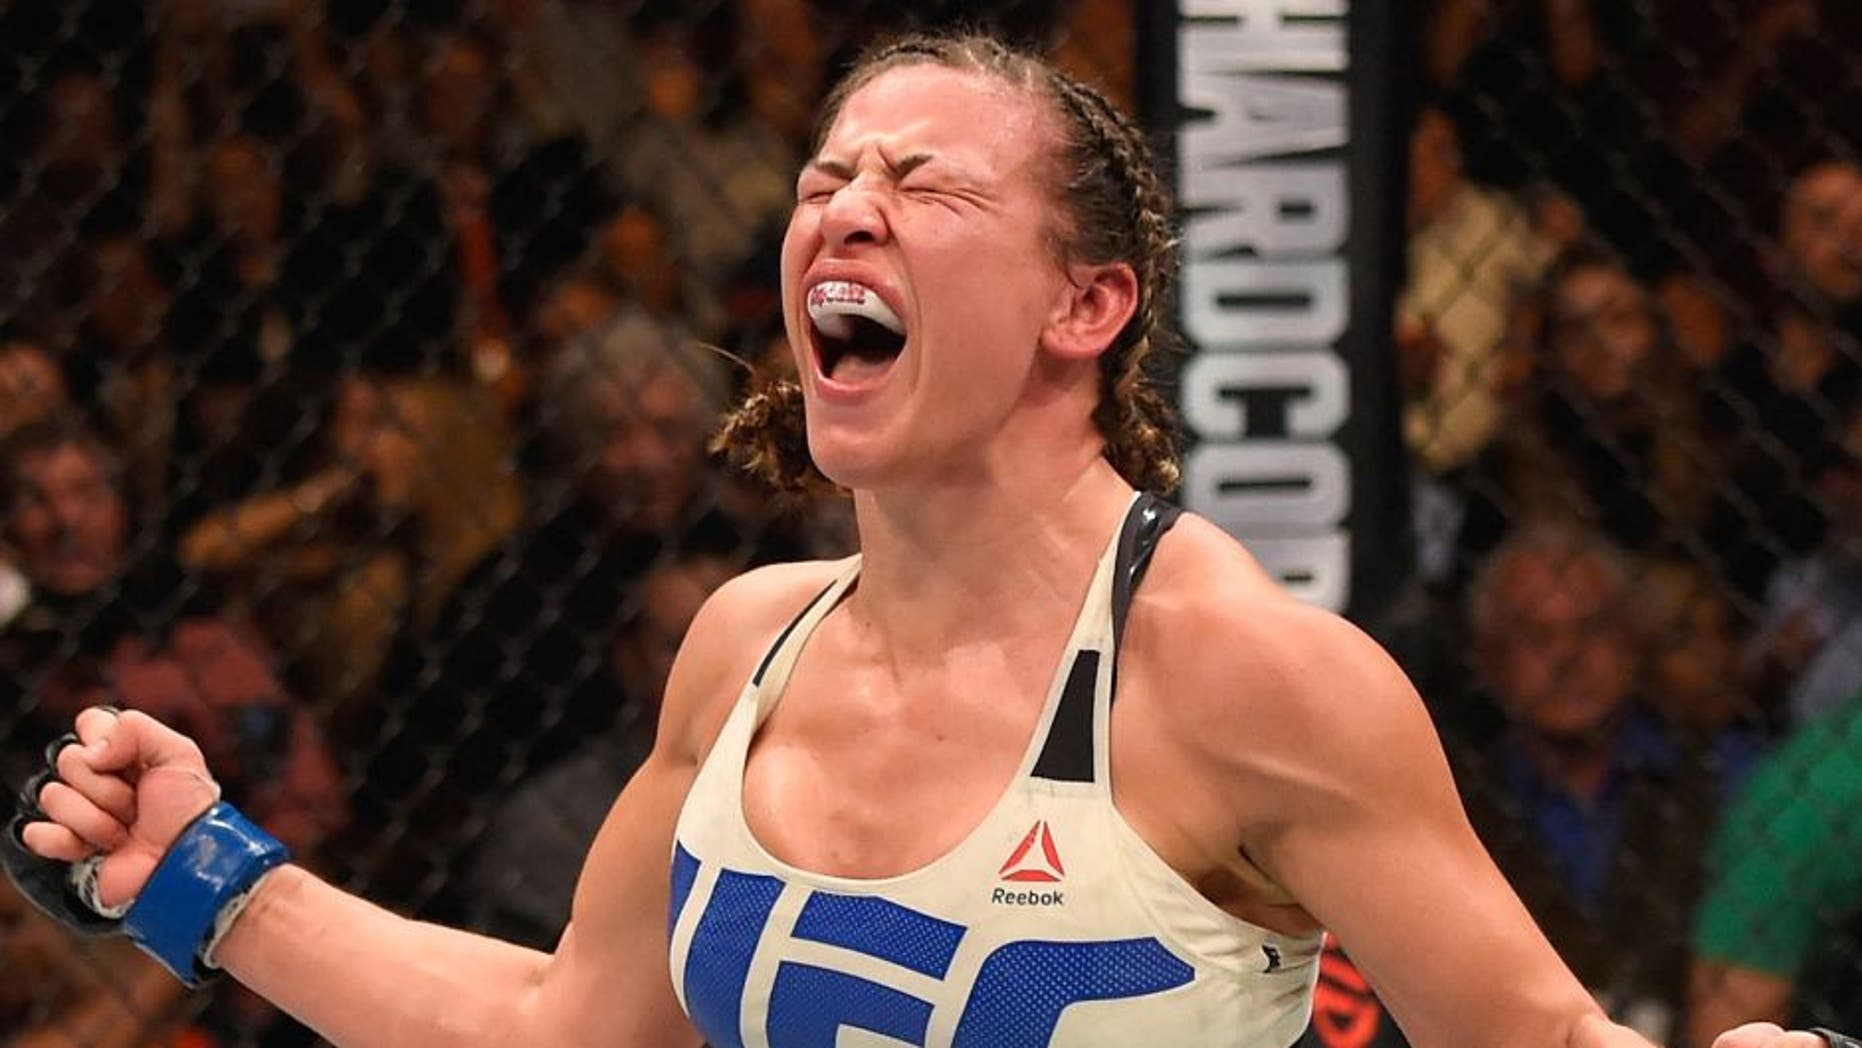 LAS VEGAS, NV - MARCH 05: Miesha Tate reacts after her submission victory over Holly Holm in their UFC women's bantamweight championship bout during the UFC 196 event inside MGM Grand Garden Arena on March 5, 2016 in Las Vegas, Nevada. (Photo by Josh Hedges/Zuffa LLC/Zuffa LLC via Getty Images)